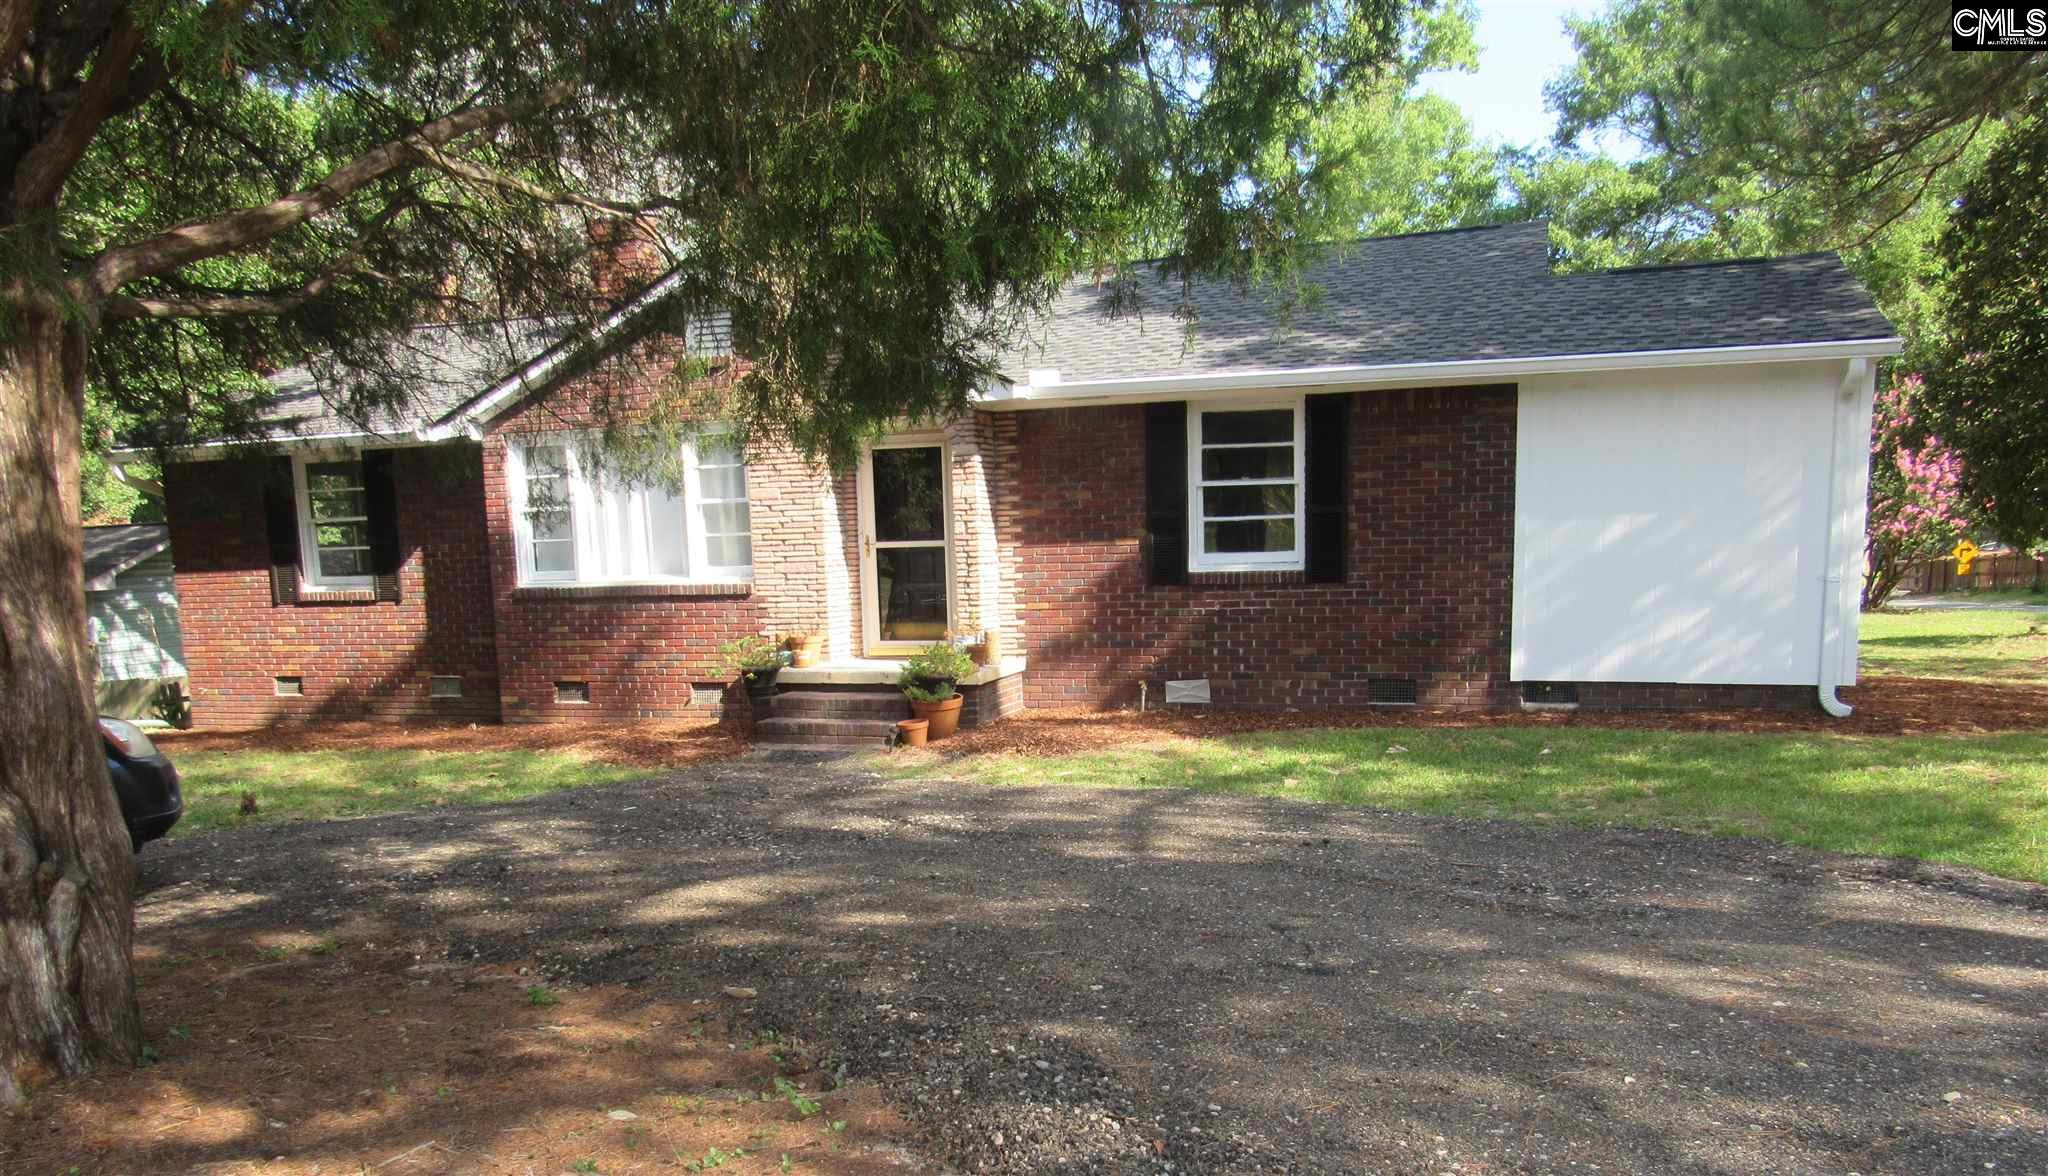 1700 Gilvie West Columbia, SC 29169-0000